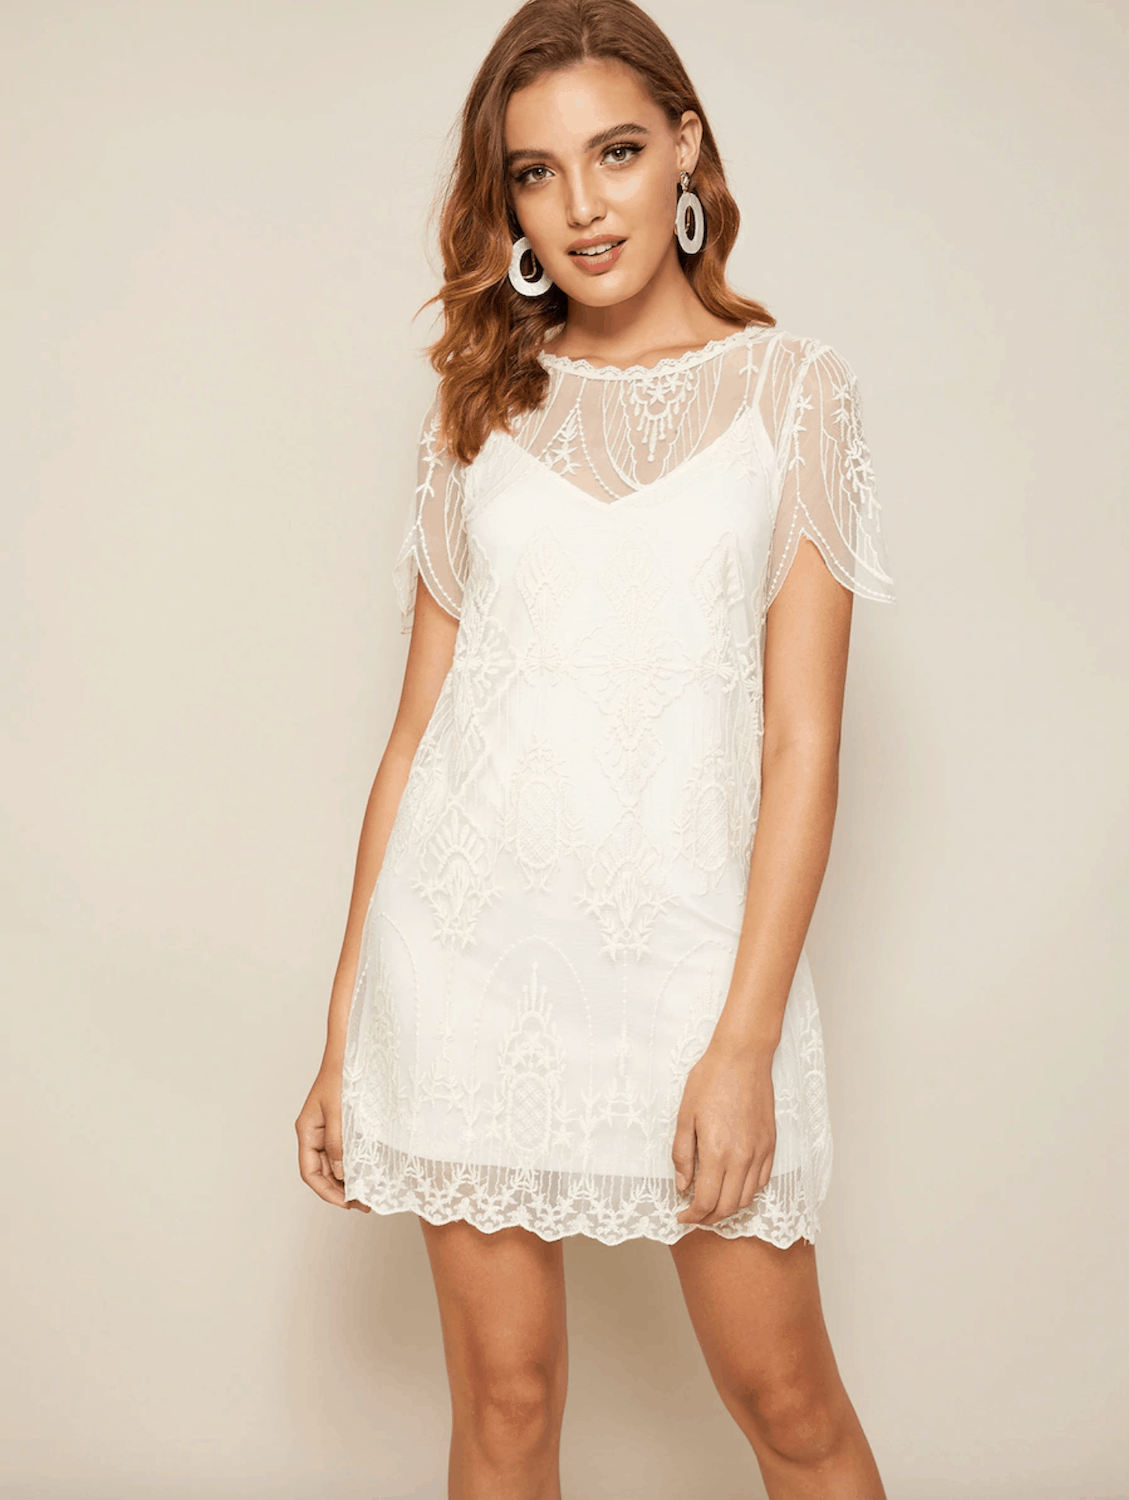 a334284799d Prettiest City Hall Wedding Dresses and Courthouse Bridal Outfits Solid  Cami Dress Embroidery Lace Dress